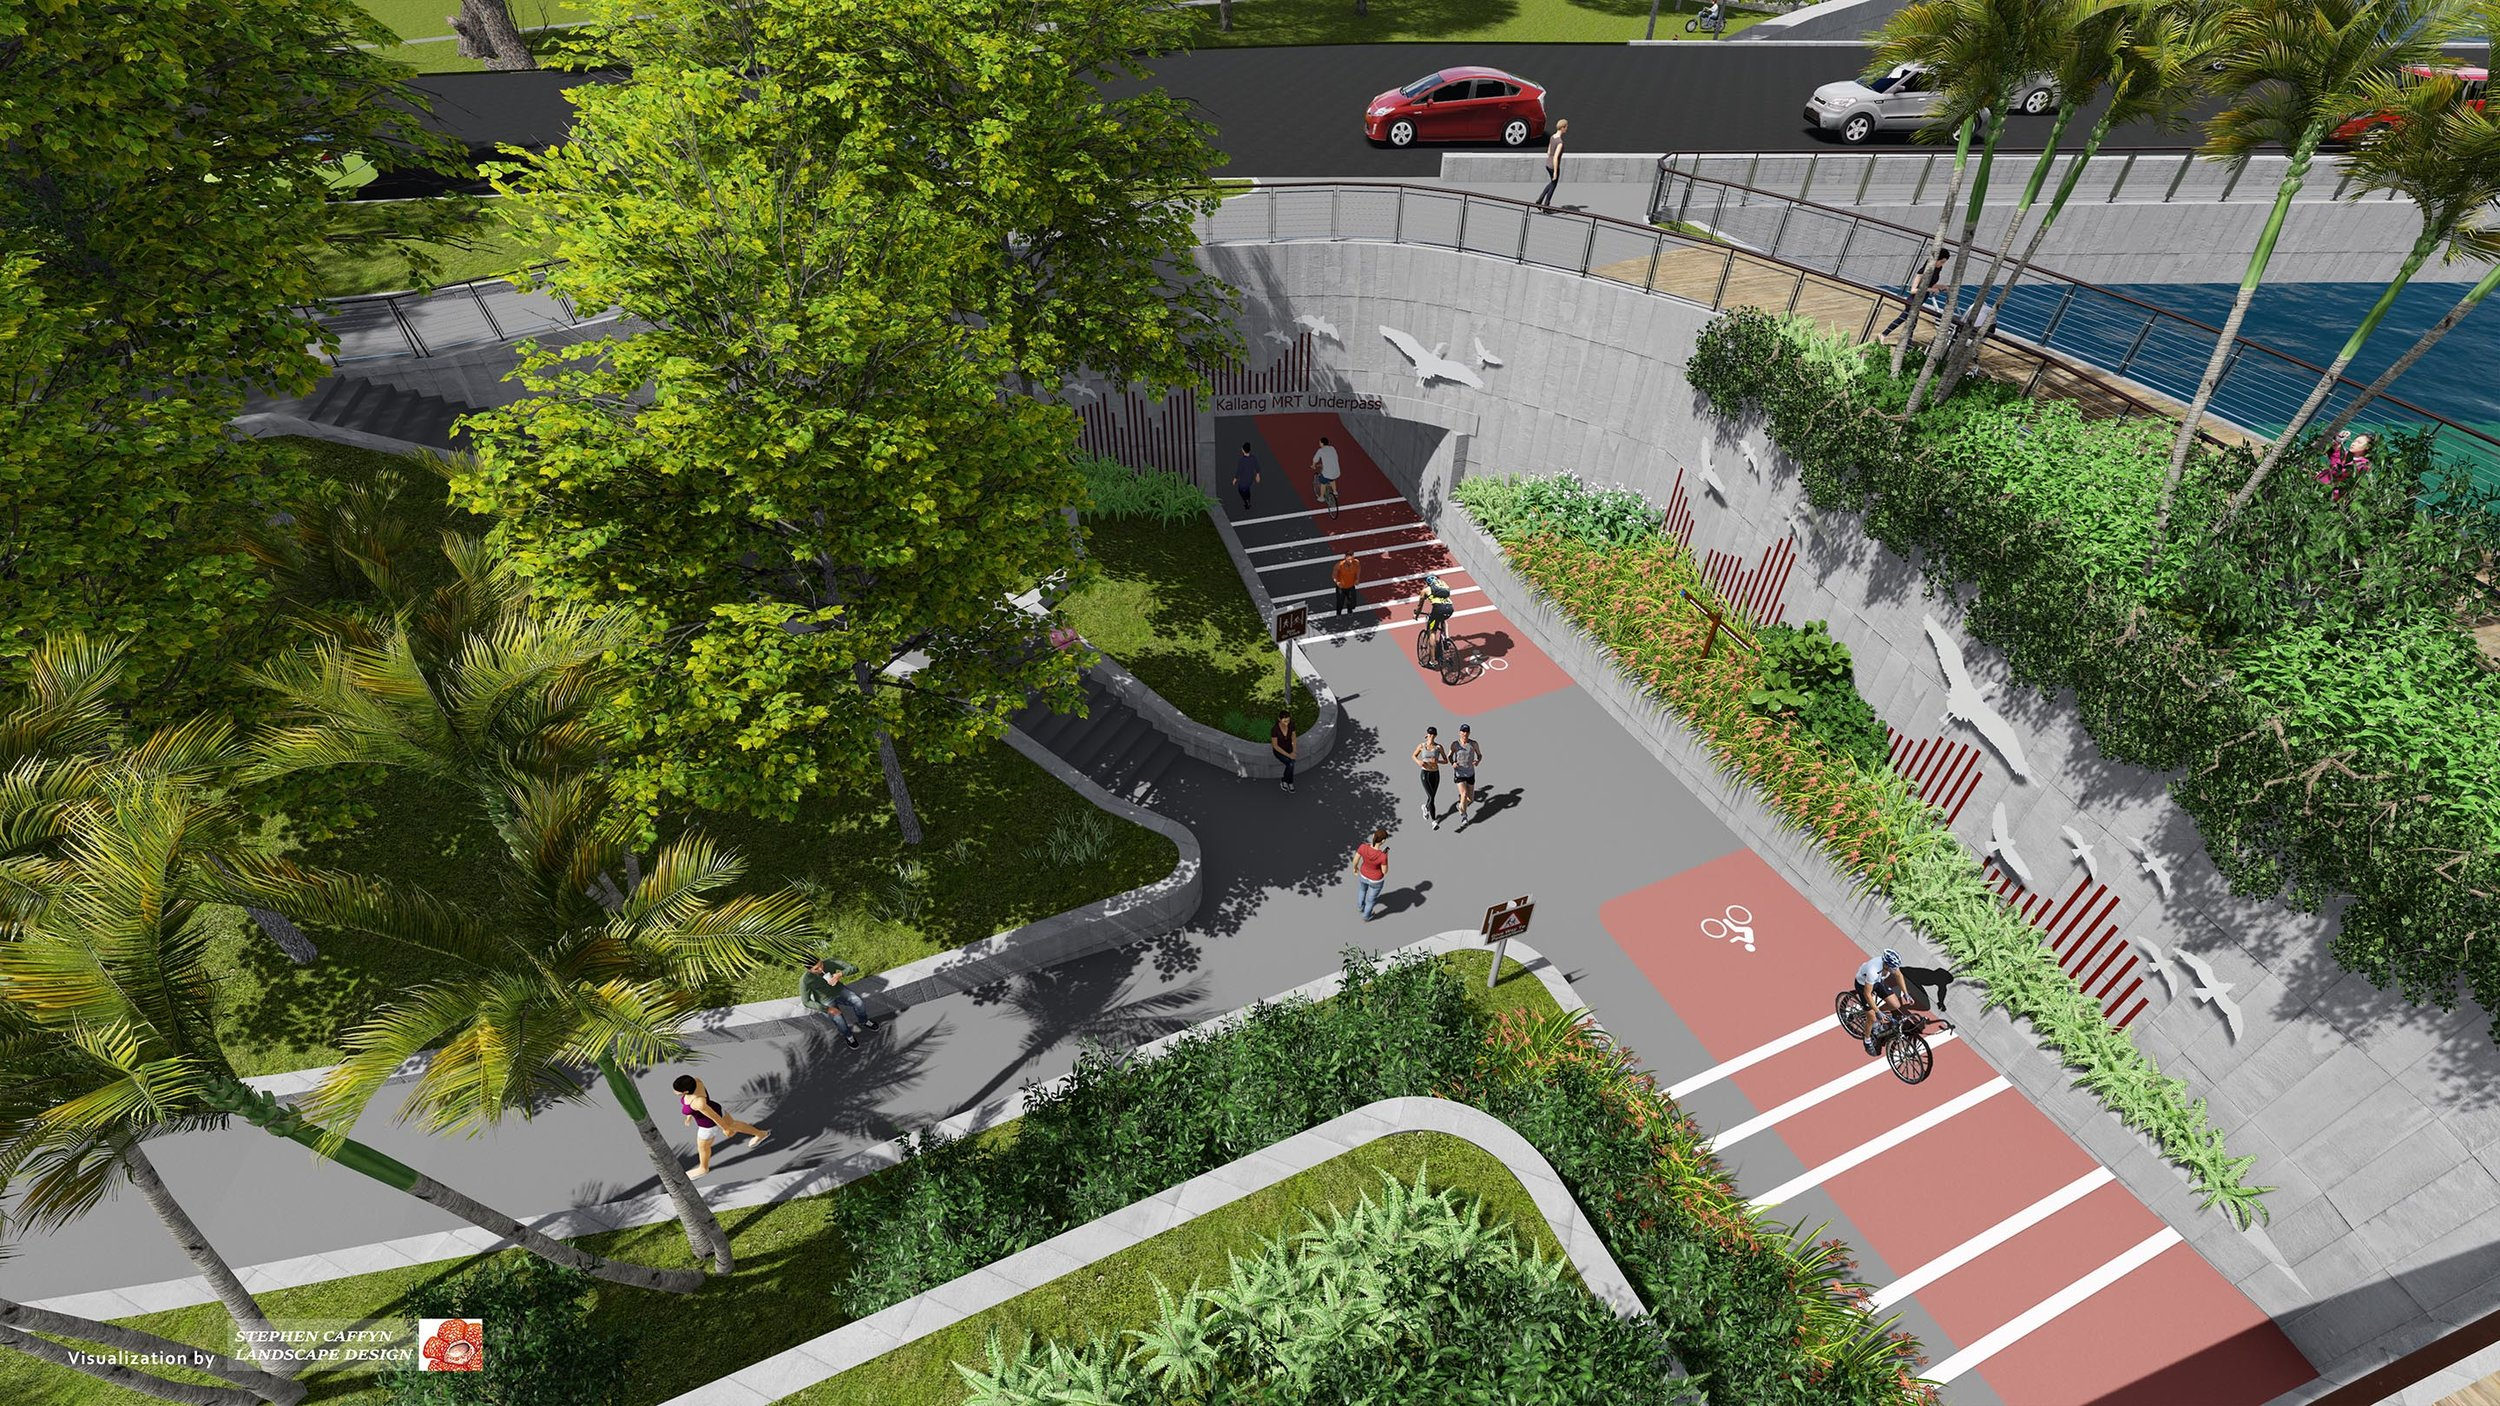 SCLD's Visualization of Proposed Underpass at Sims Avenue